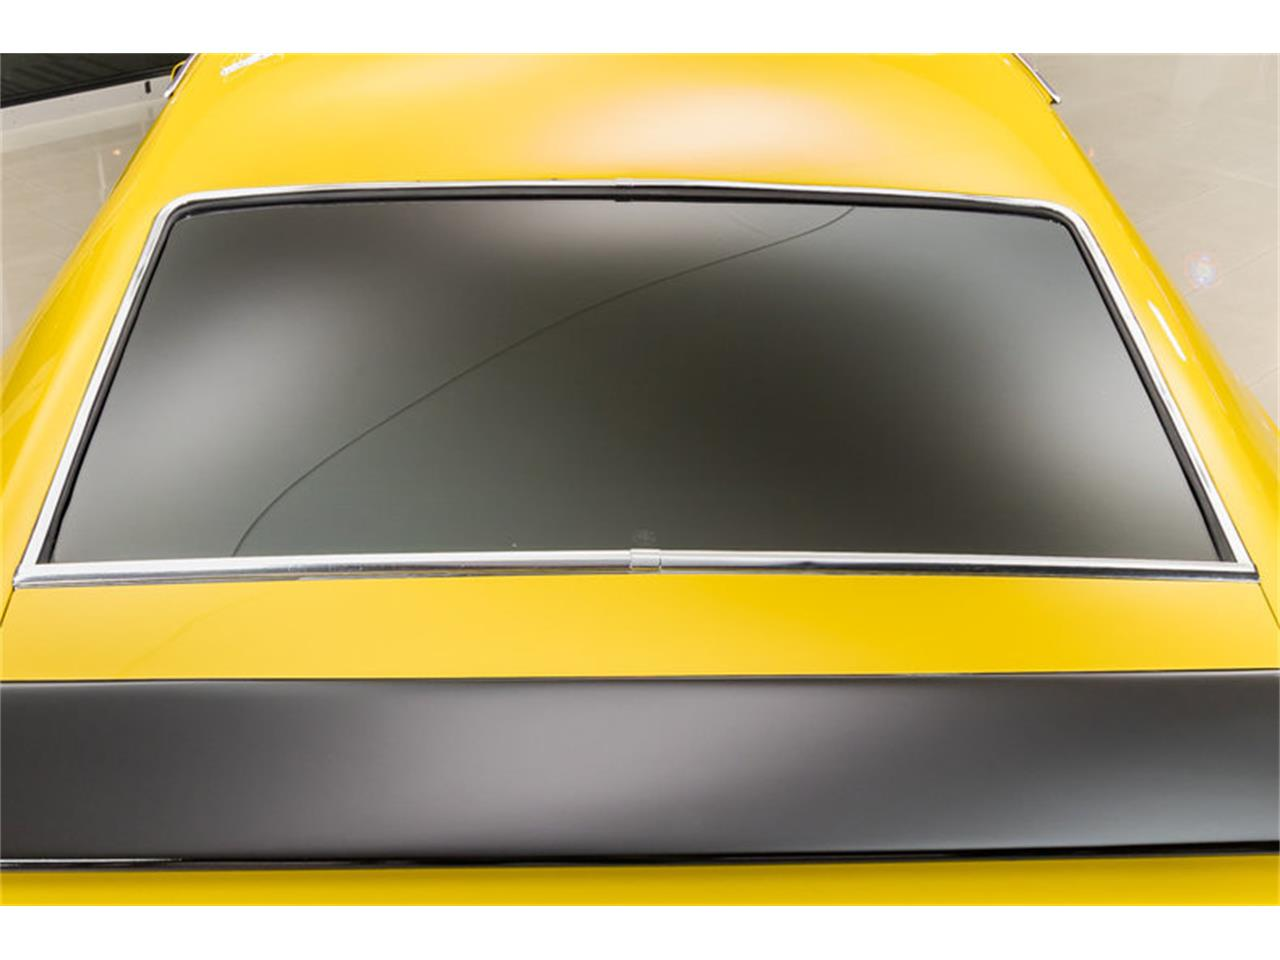 Large Picture of '72 Ford Mustang Boss 351 Recreation - $34,900.00 - JGDO